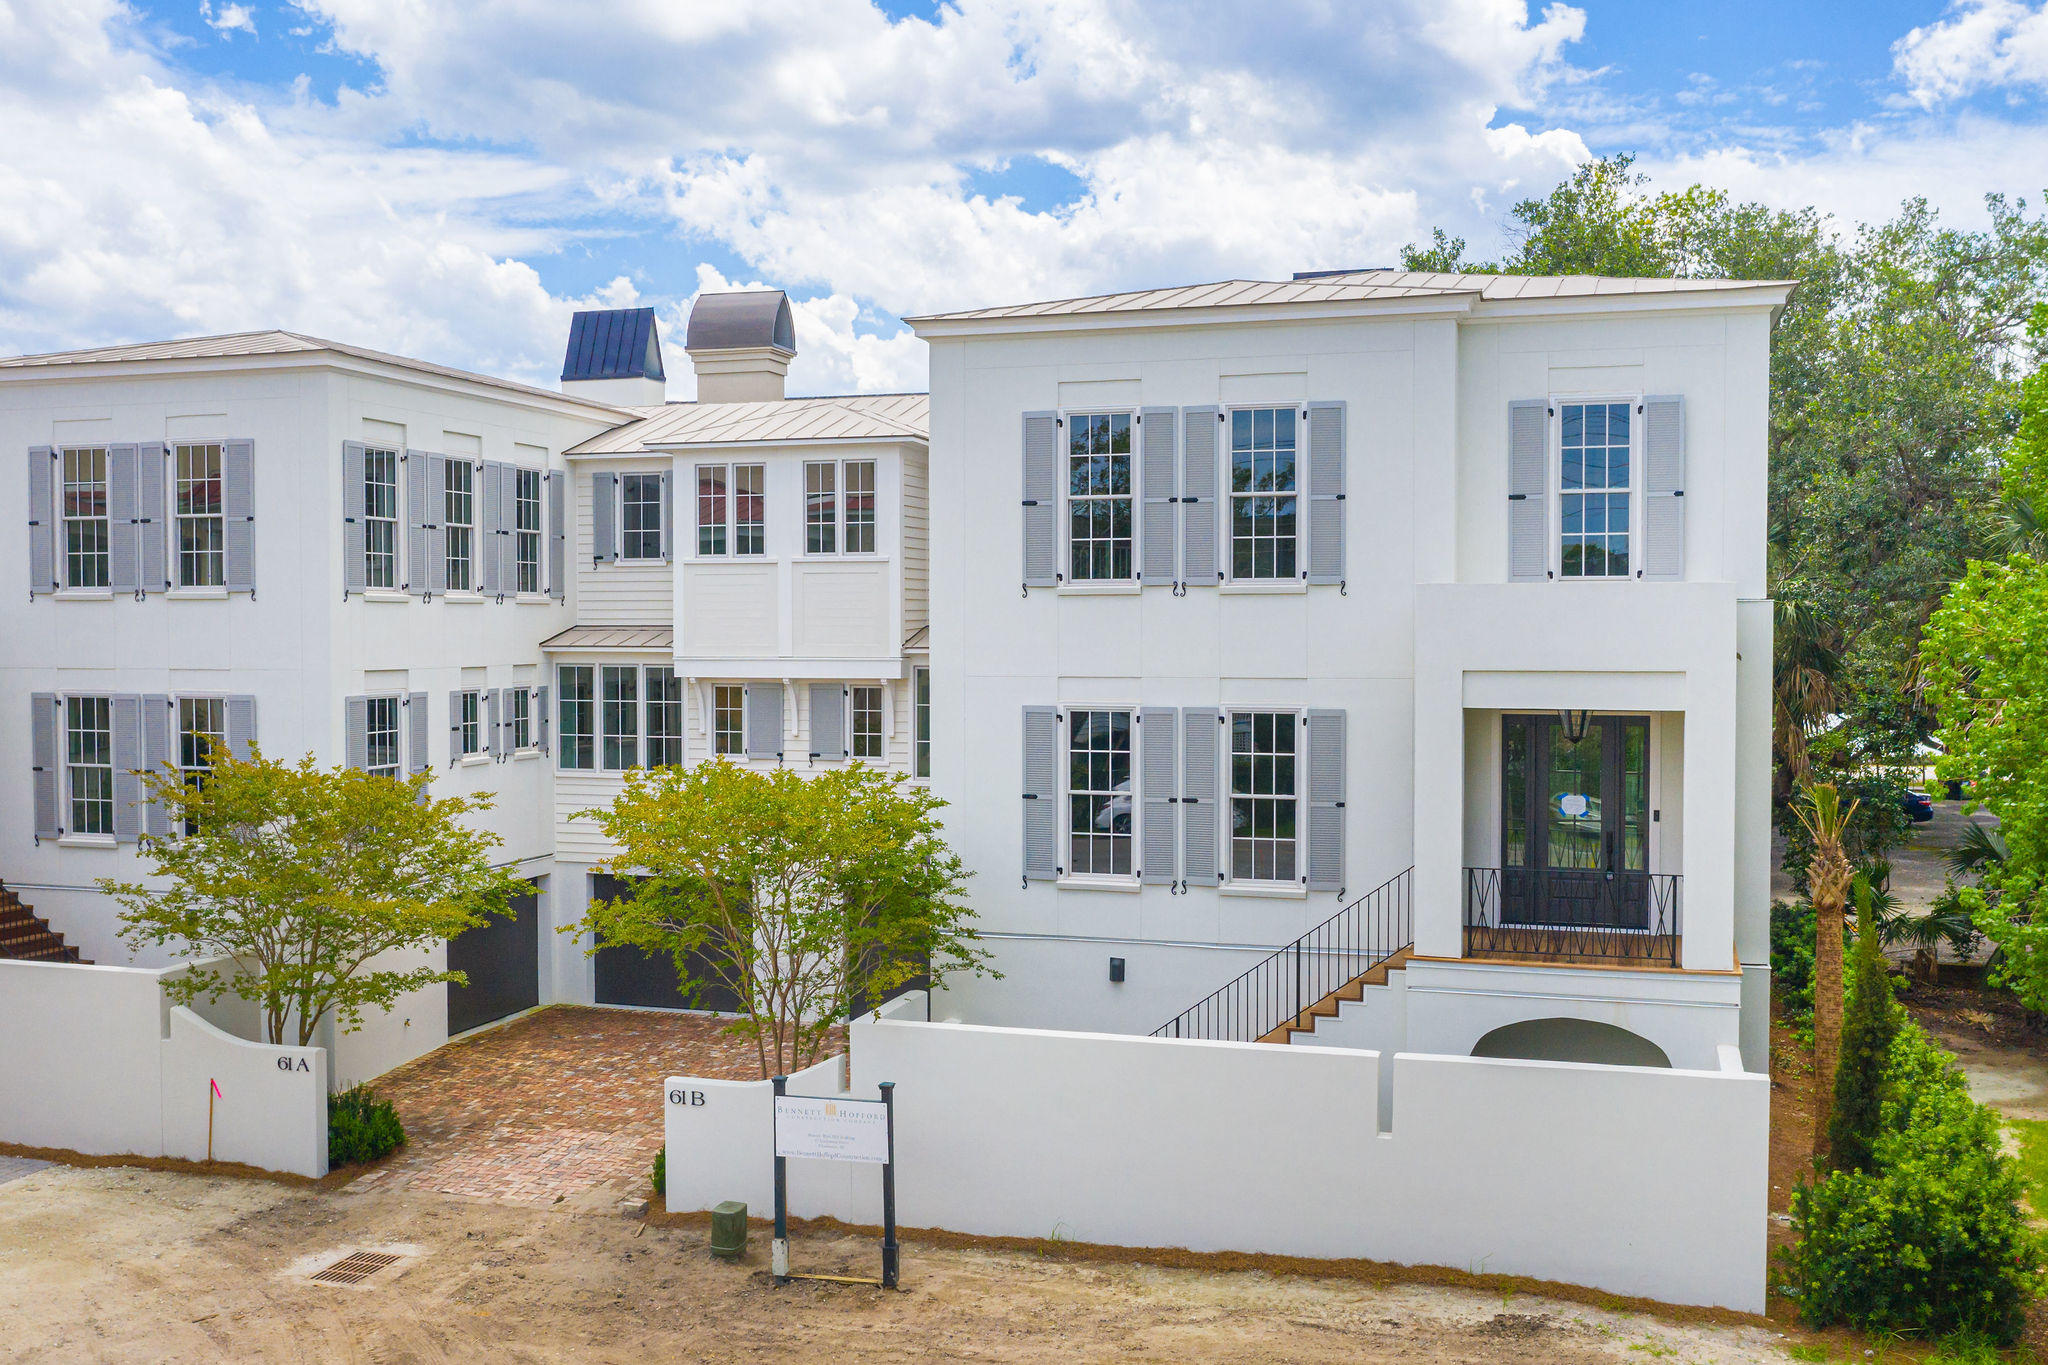 Harleston Village Condos For Sale - 61 B Barre, Charleston, SC - 9